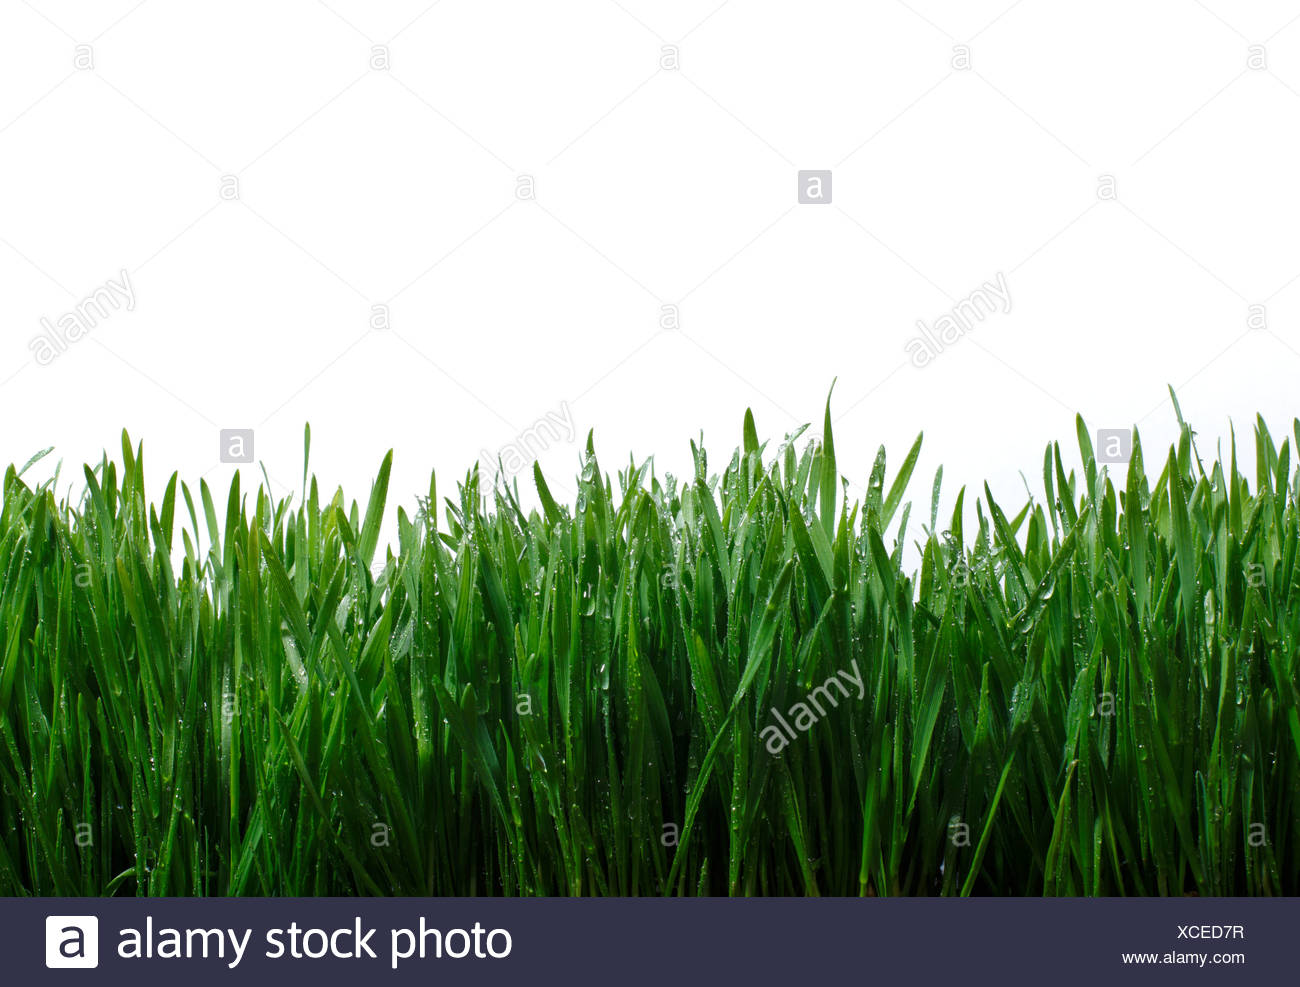 Blades of grass against white background - Stock Image